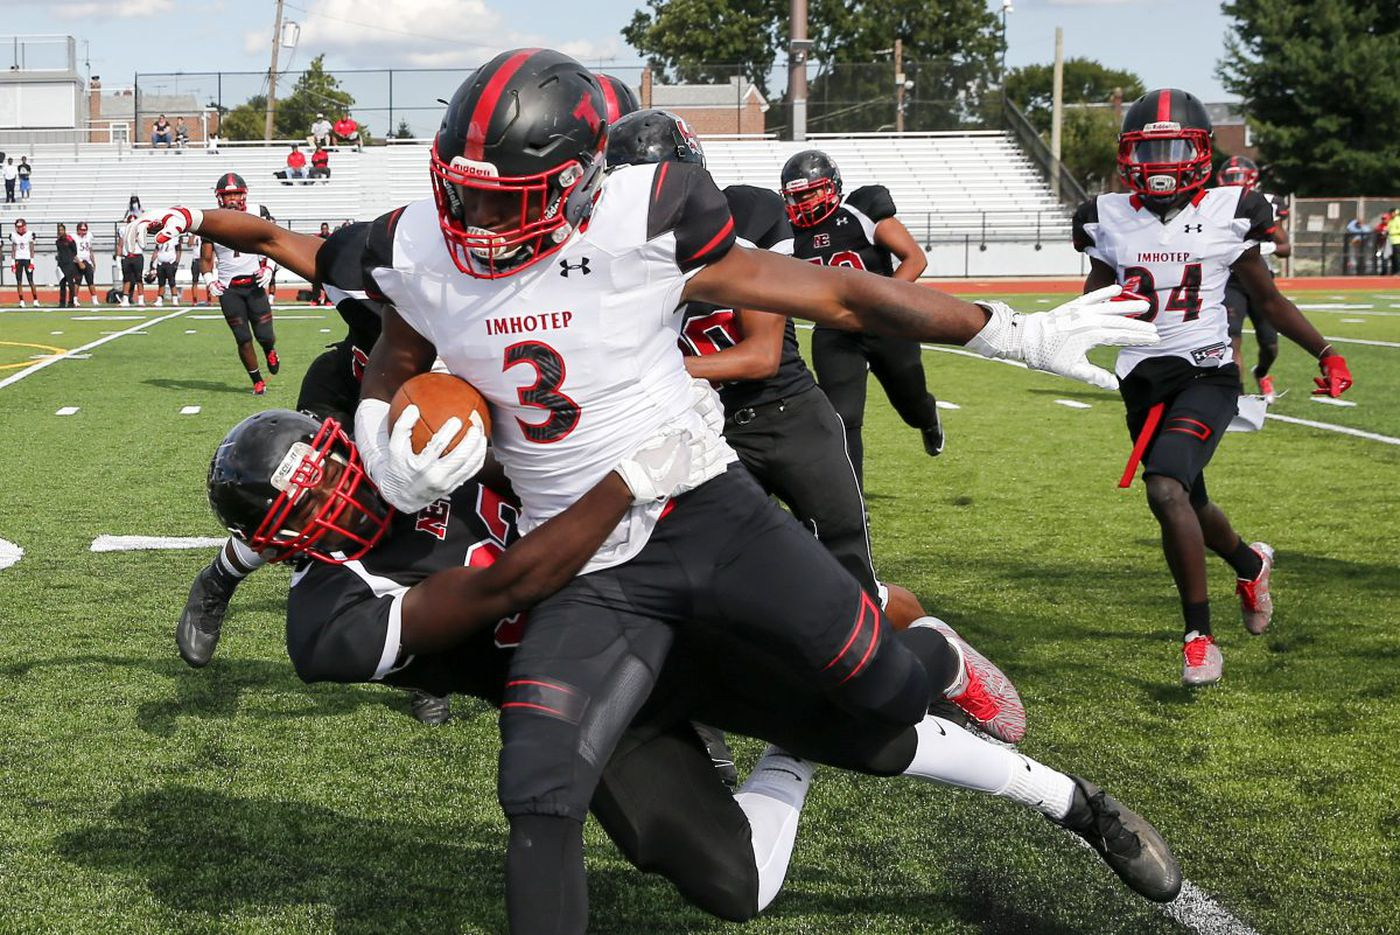 Ex-Imhotep standout Isheem Young to appear in court on robbery charge